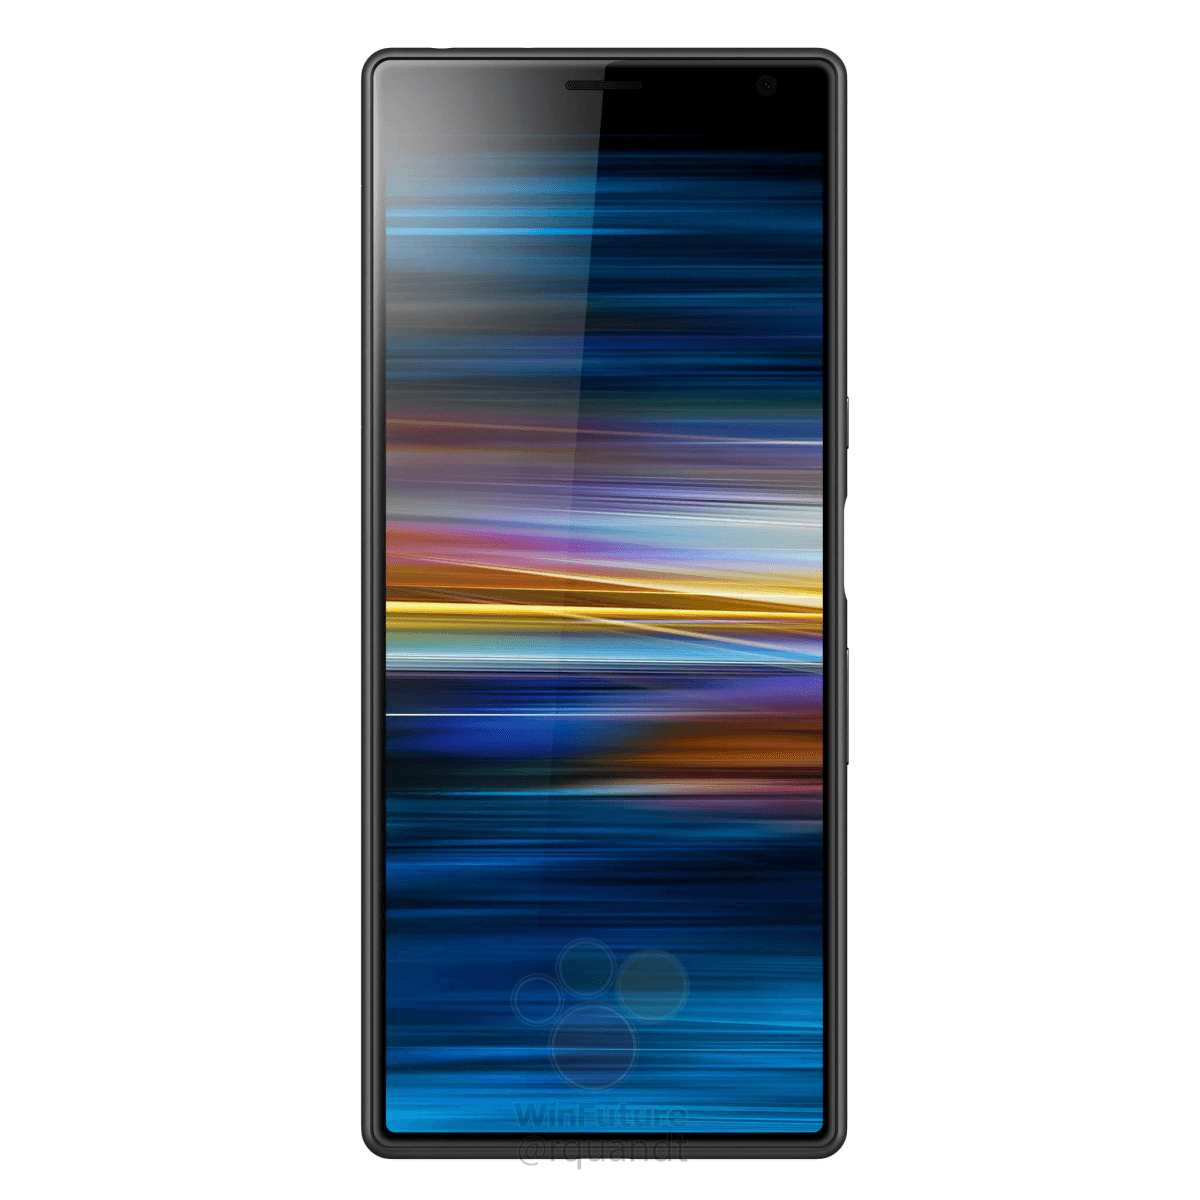 Sony Xperia 10 specs leak: It's looking like a pretty mediocre series